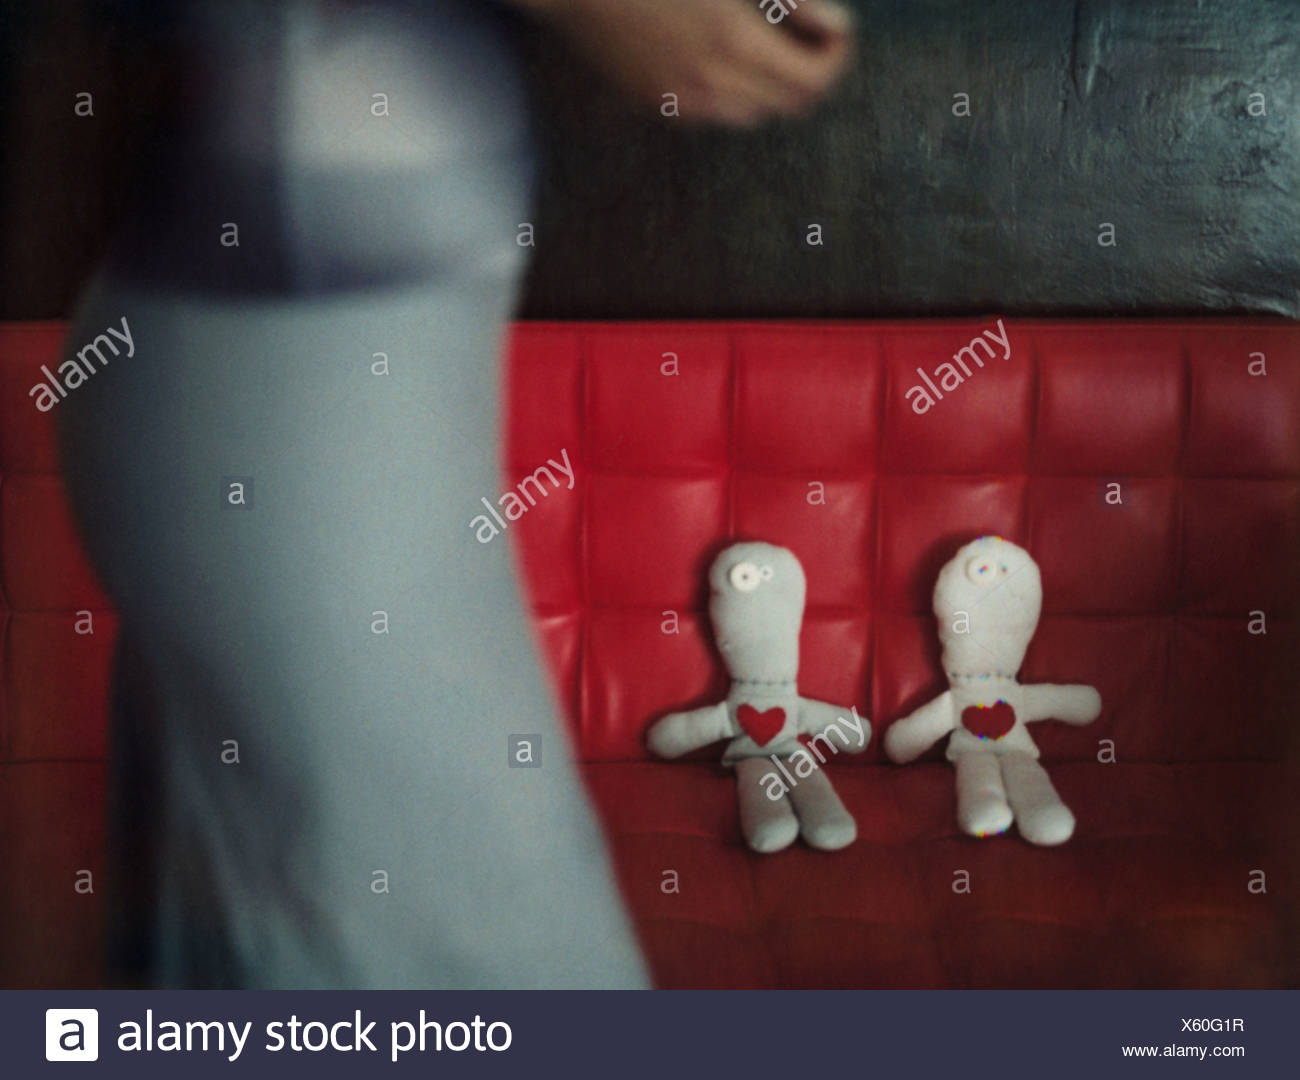 Woman walking by two rag dolls on red sofa, focus on dolls in background - Stock Image